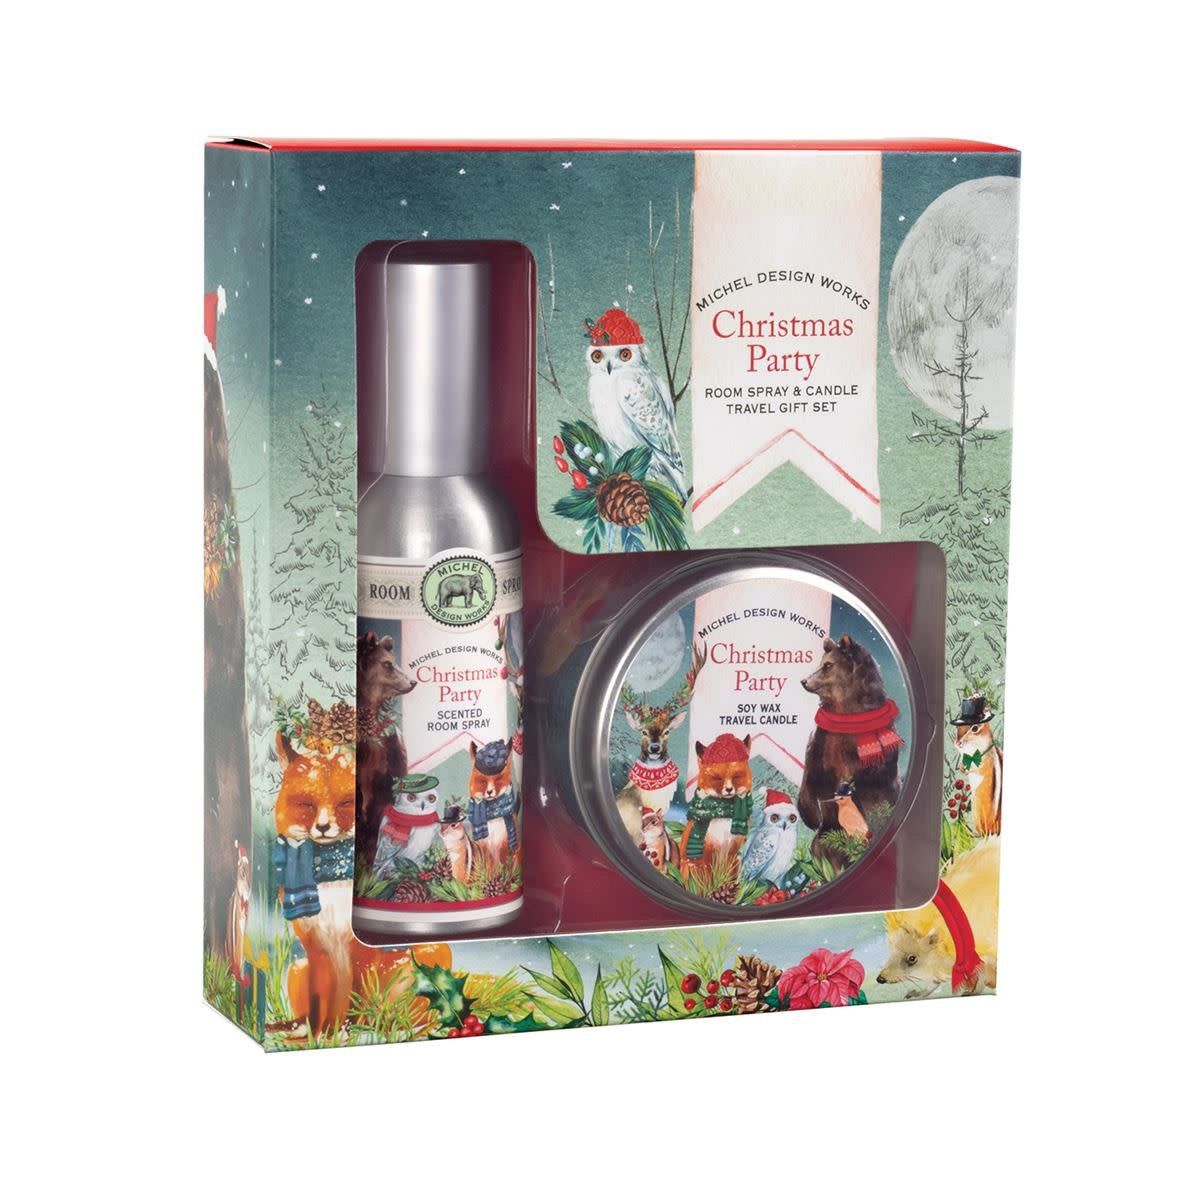 Michel Design Works Christmas Party Room Spray and Candle Travel Gift Set